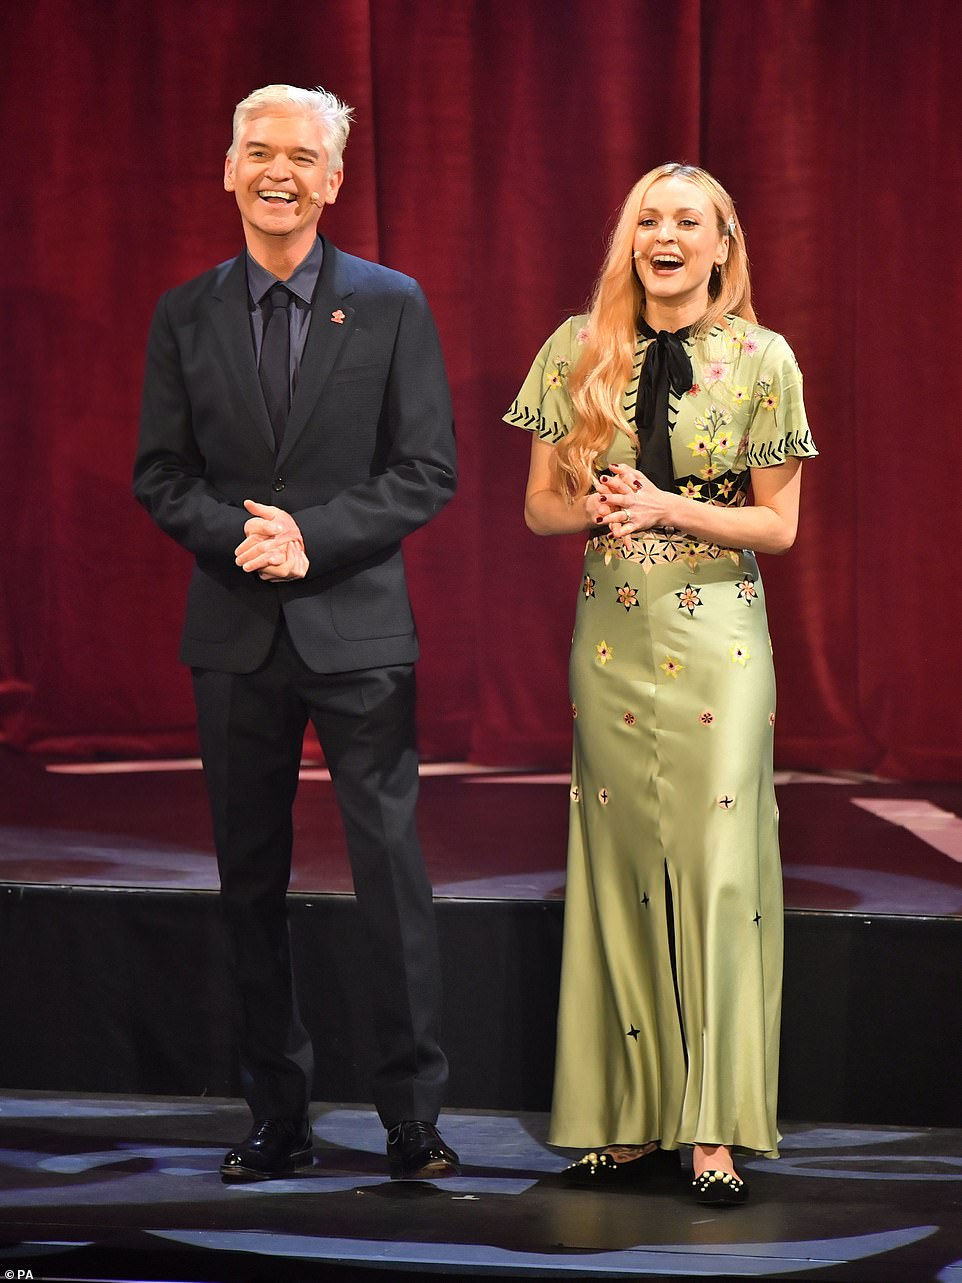 Hosts: Philip Schofield and Ferne Cotton hosted the awards at the Palladium